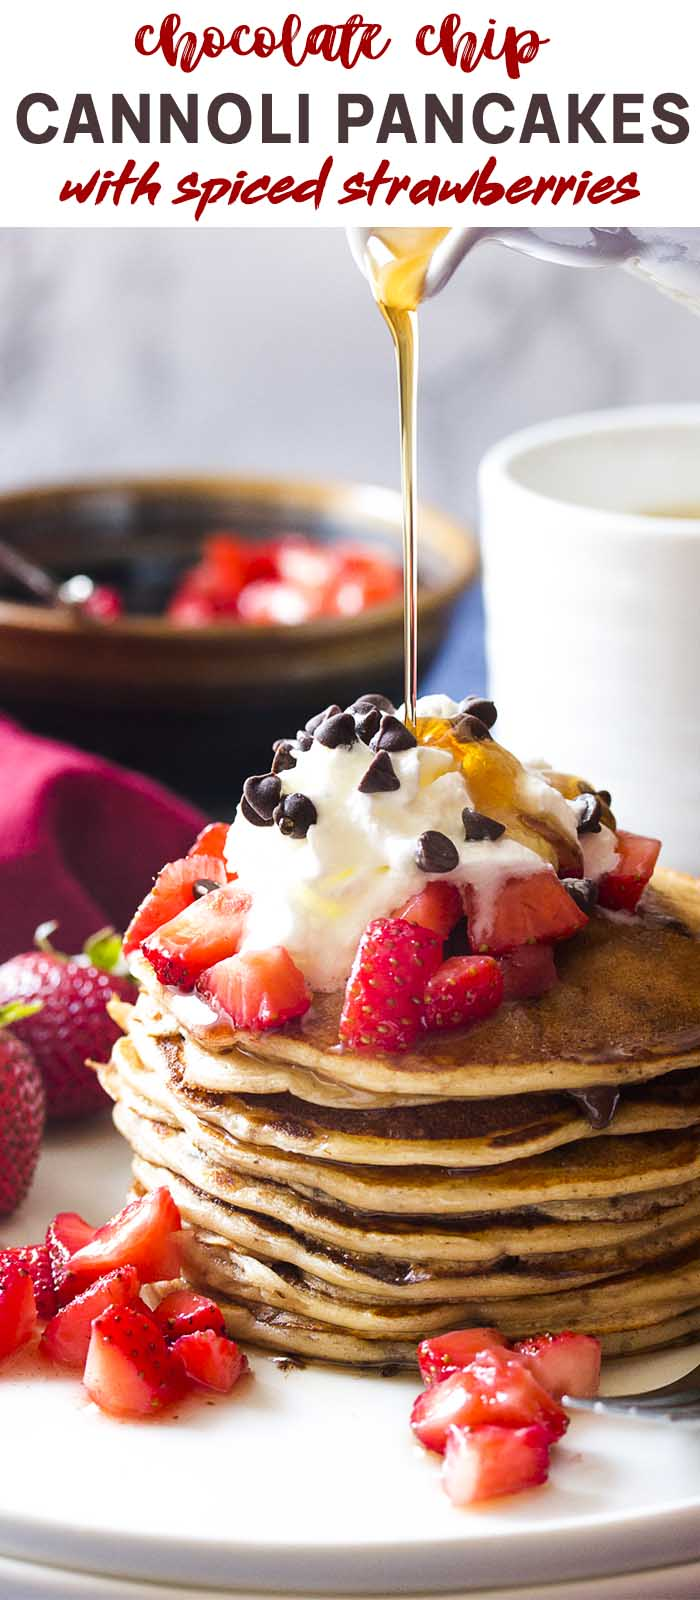 Syrup pouring onto a stack of pancakes and strawberries with text overlay - Cannoli Pancakes.